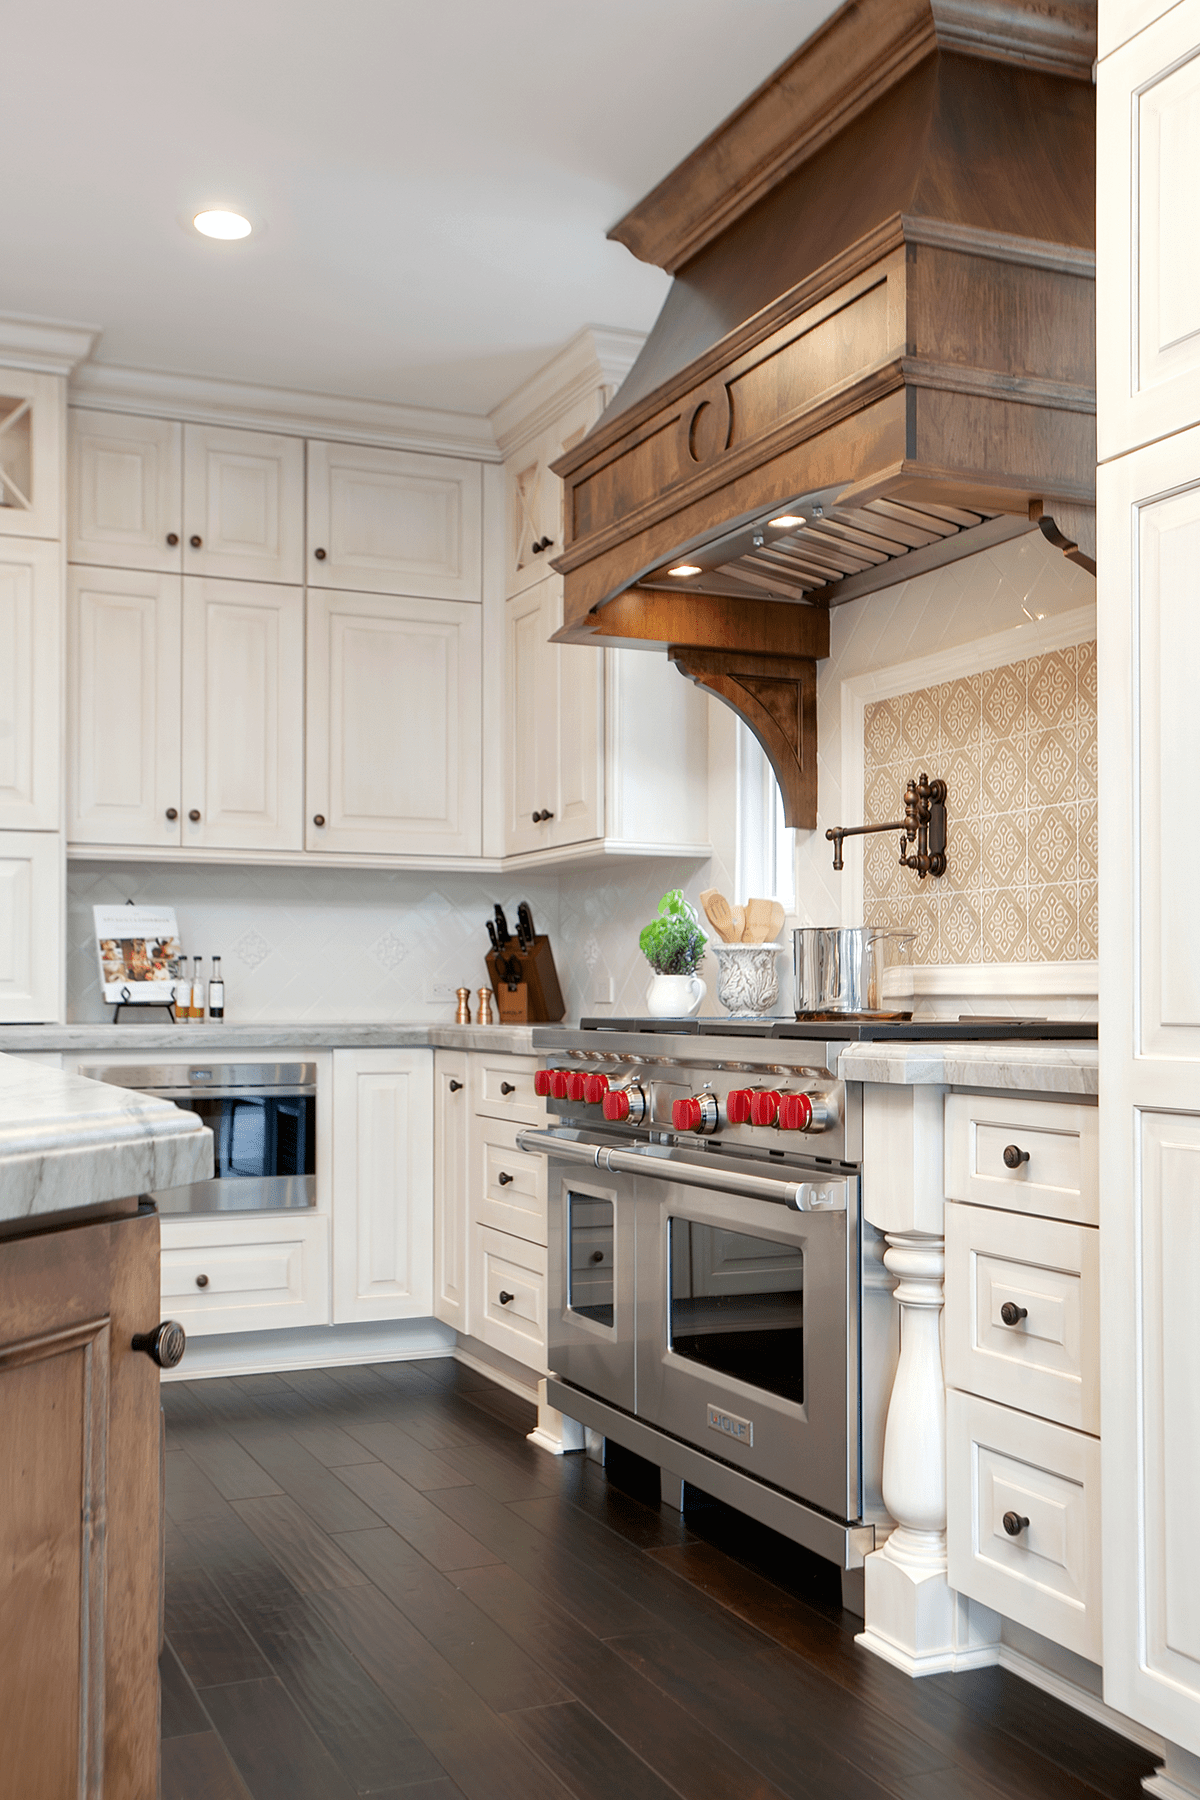 Cooking up Function and Style: Hood Ideas for the Kitchen Design in Your Whole Home Remodel or Custom Home